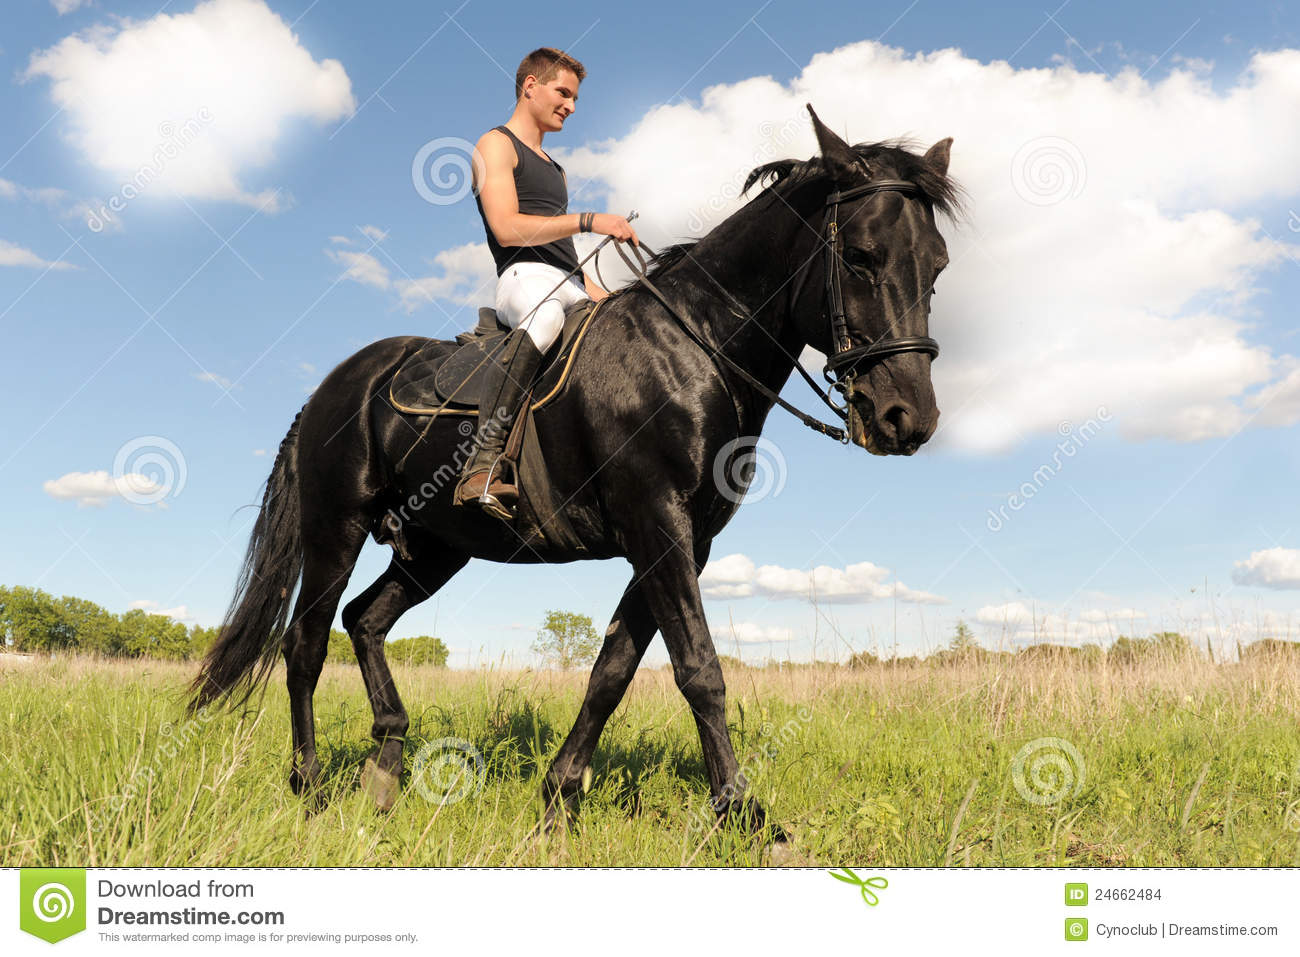 photo cheval et homme